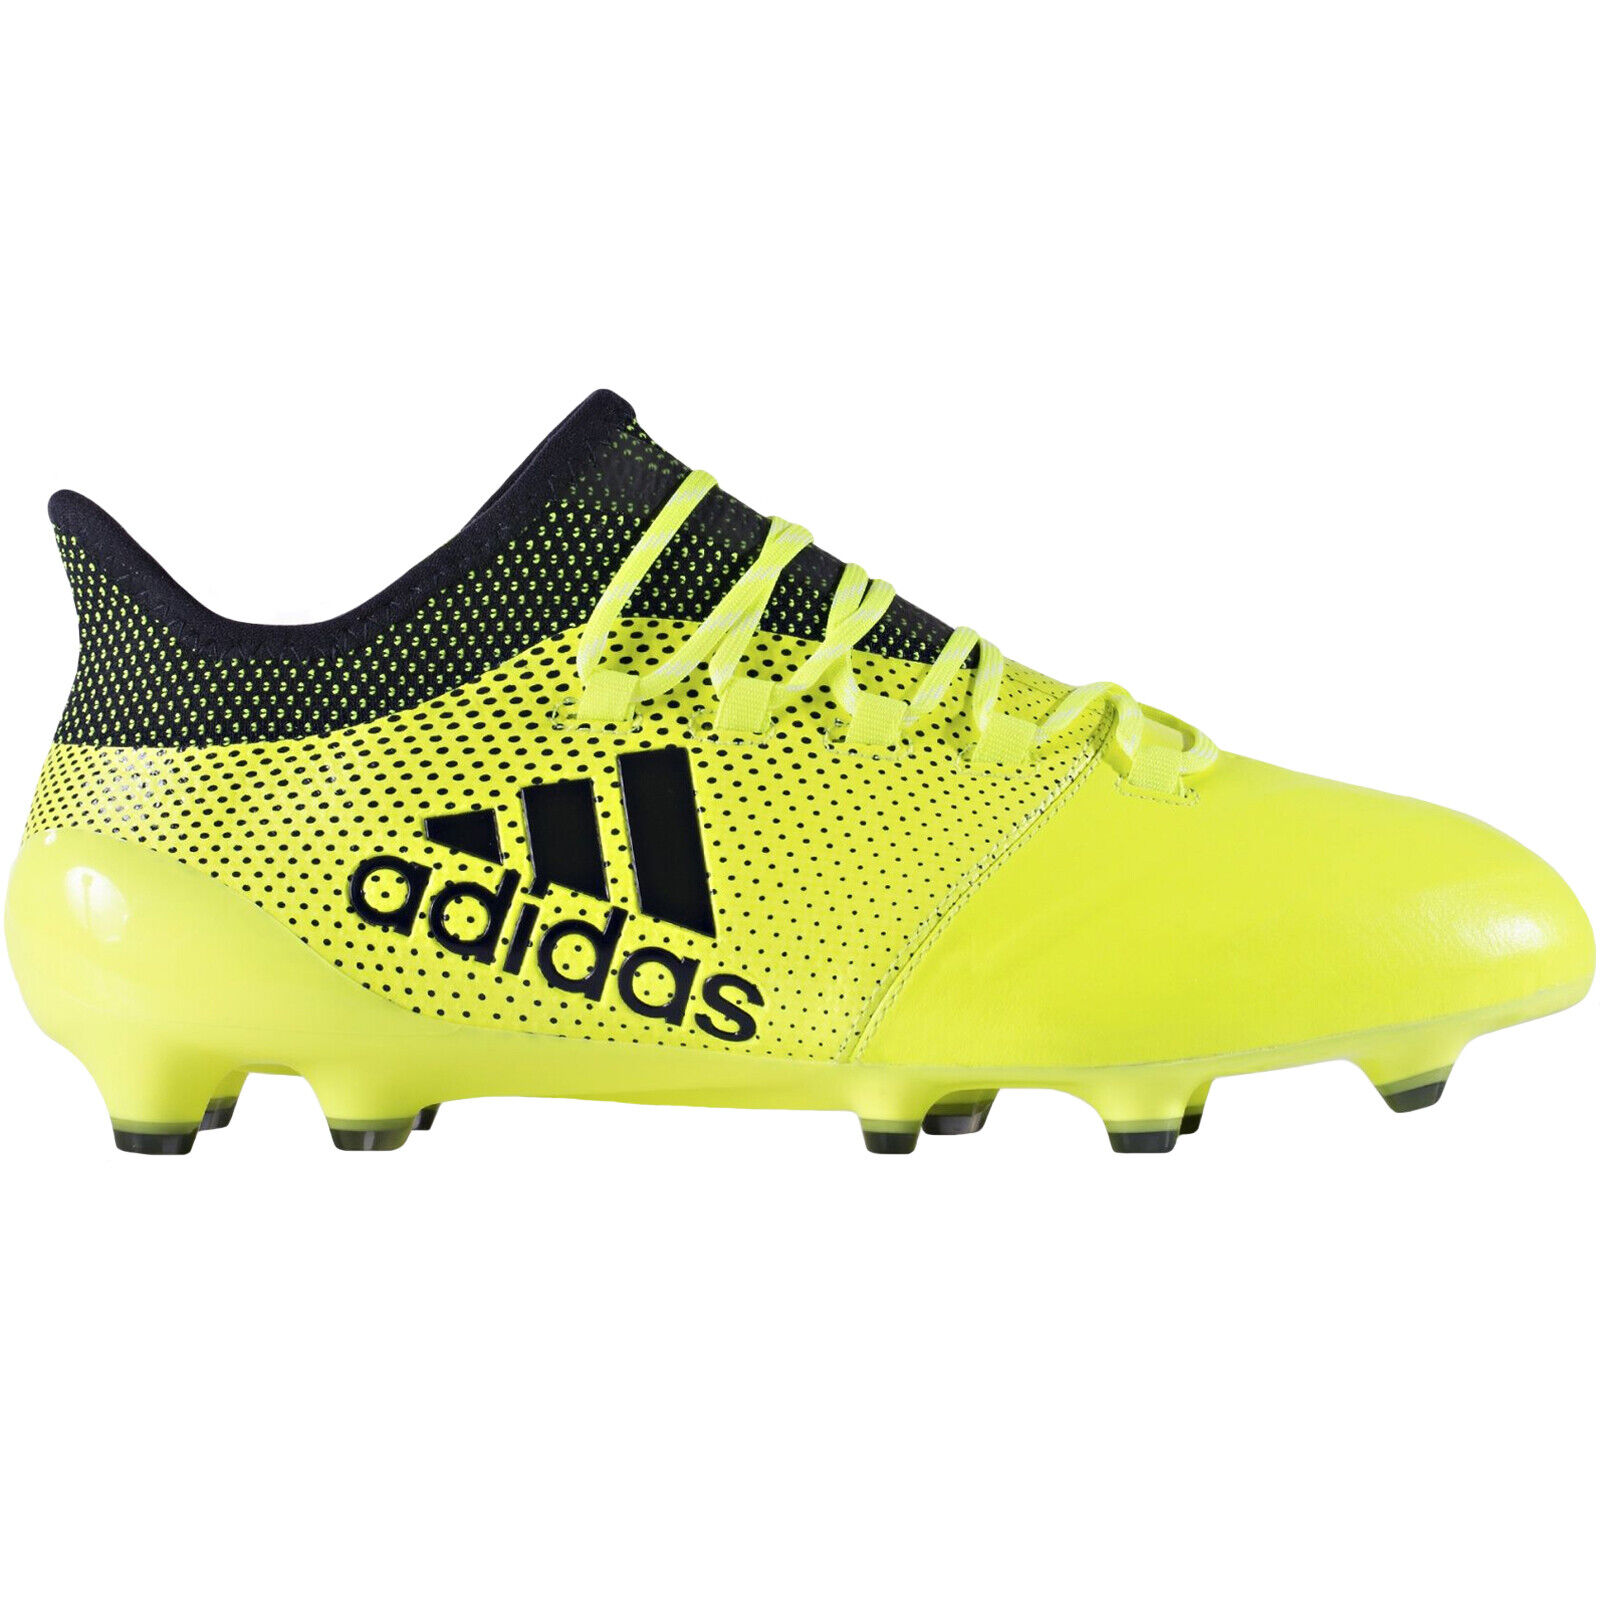 Adidas Performance Mens X 17.1 Leather Firm Ground Sports Football Stiefel -Gelb